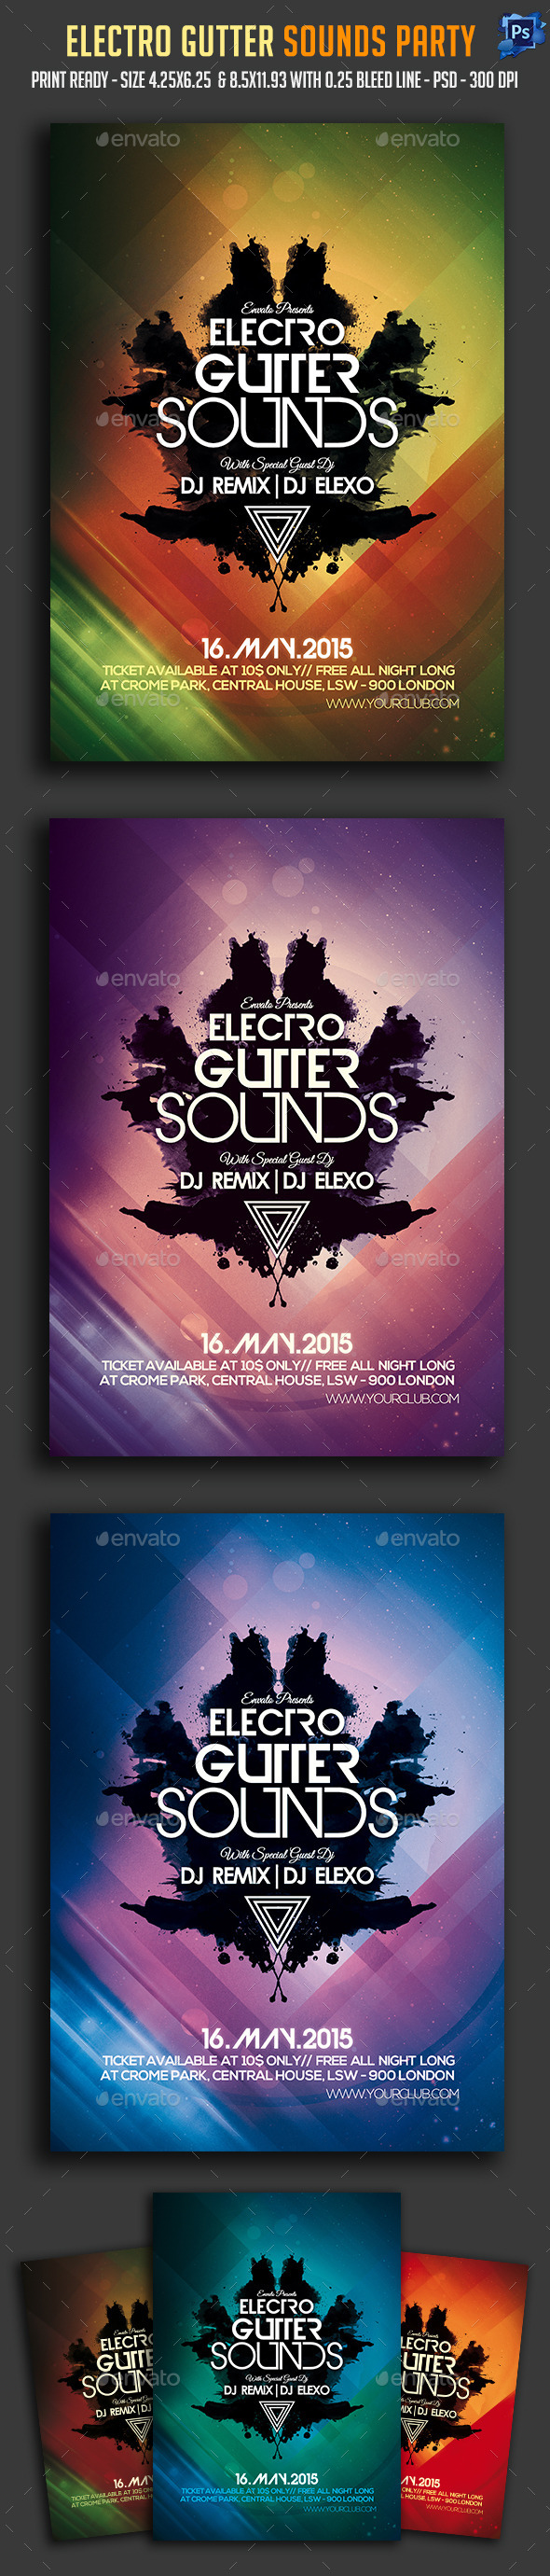 Electro Gutter Sounds Party Flyer  - Clubs & Parties Events